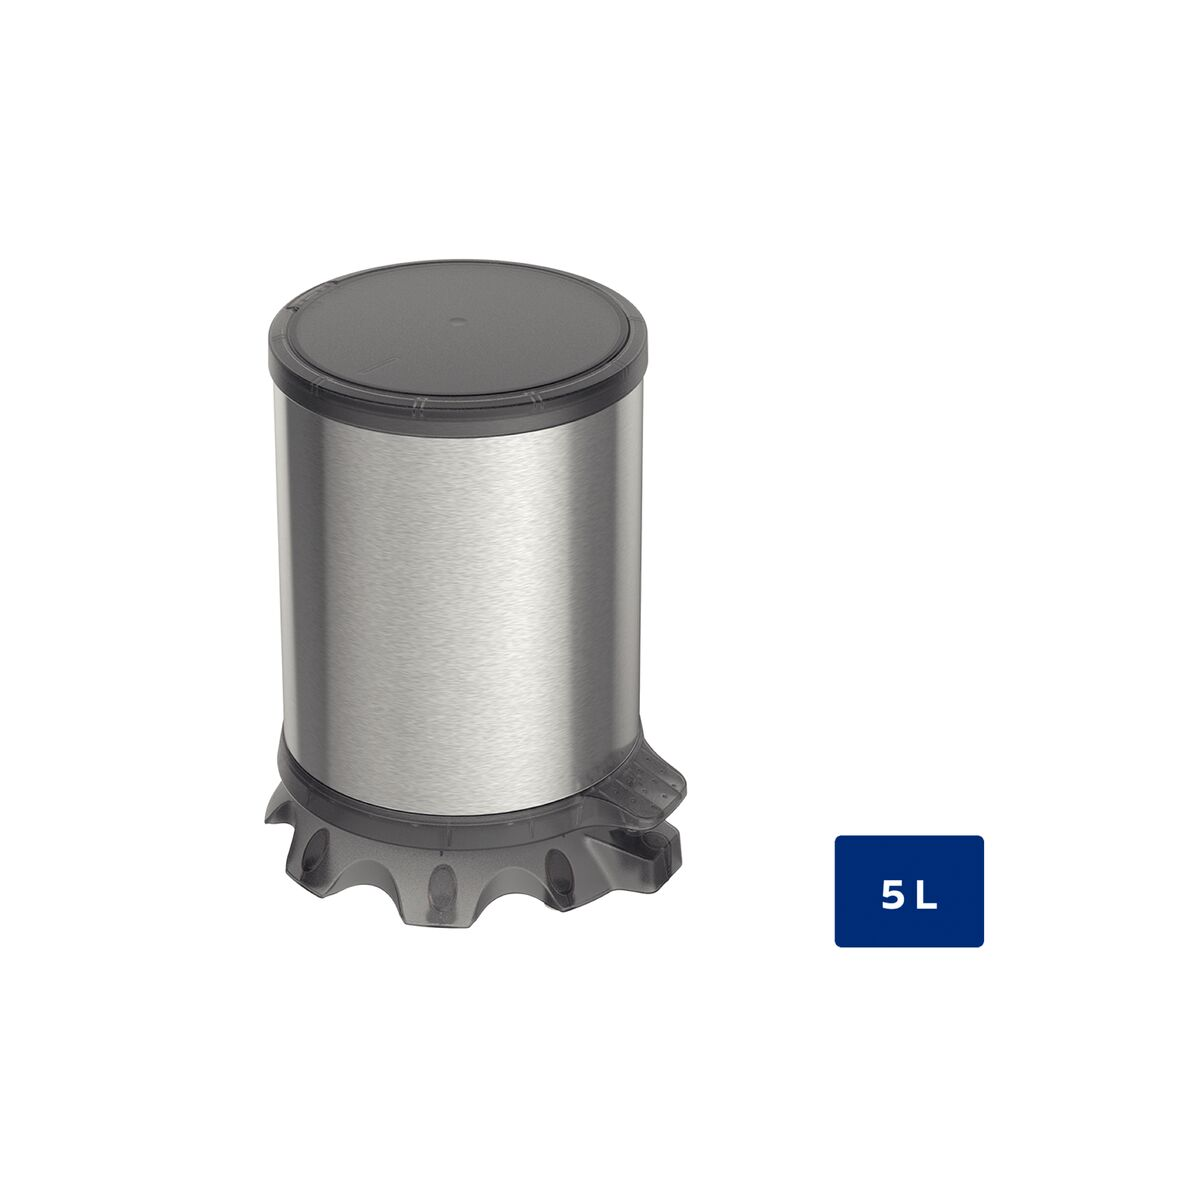 Tramontina Sofie stainless steel pedal trash can with Scotch Brite finish and transparent black plastic detailing, 5 L